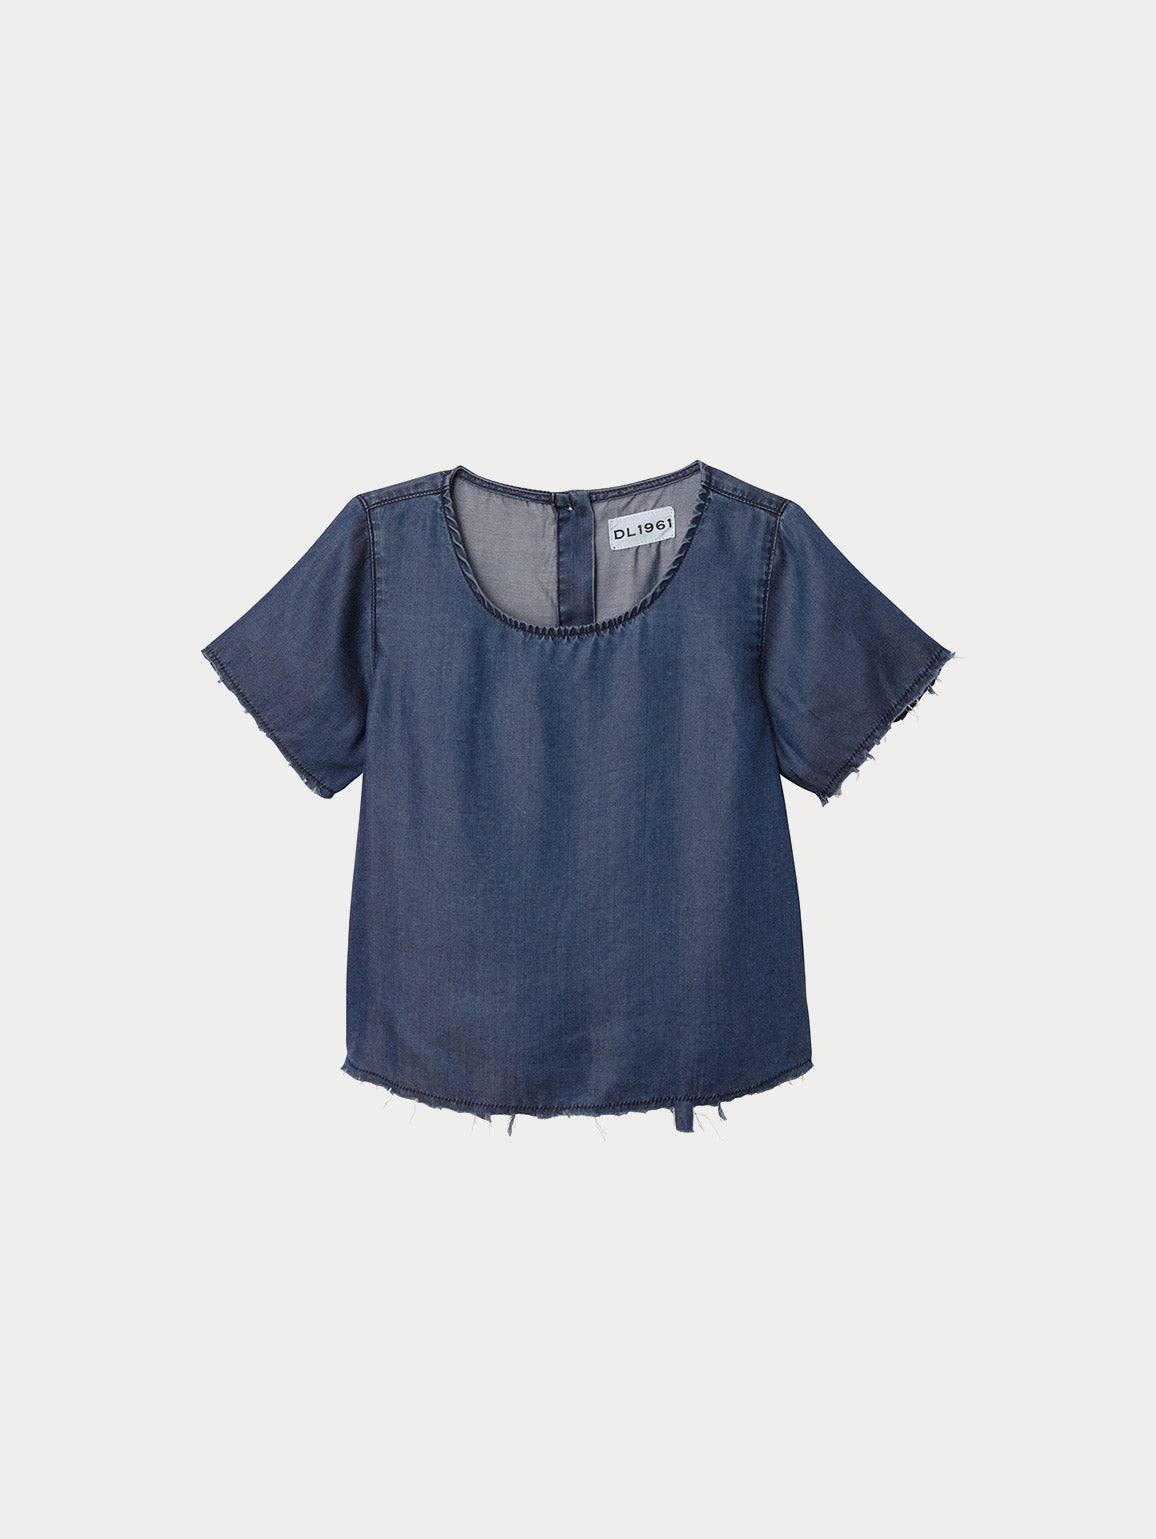 Keira Toddler Short Sleeve Tee | Dark Rinse